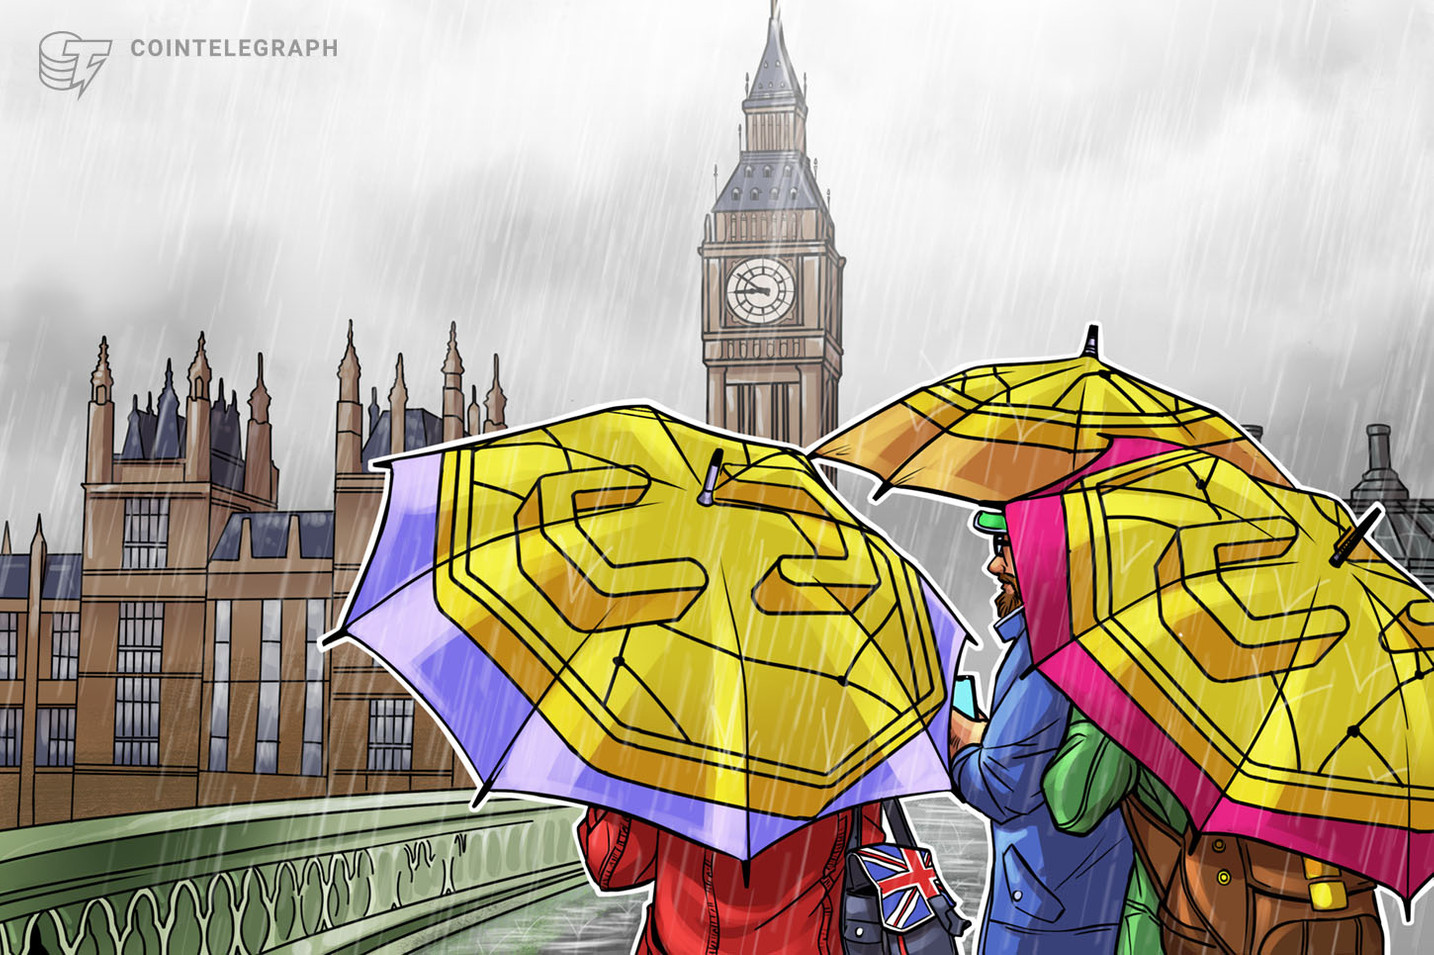 Ledger Wallet Co-Opts Controversial Pro-Brexit Slogan for Cryptocurrencies